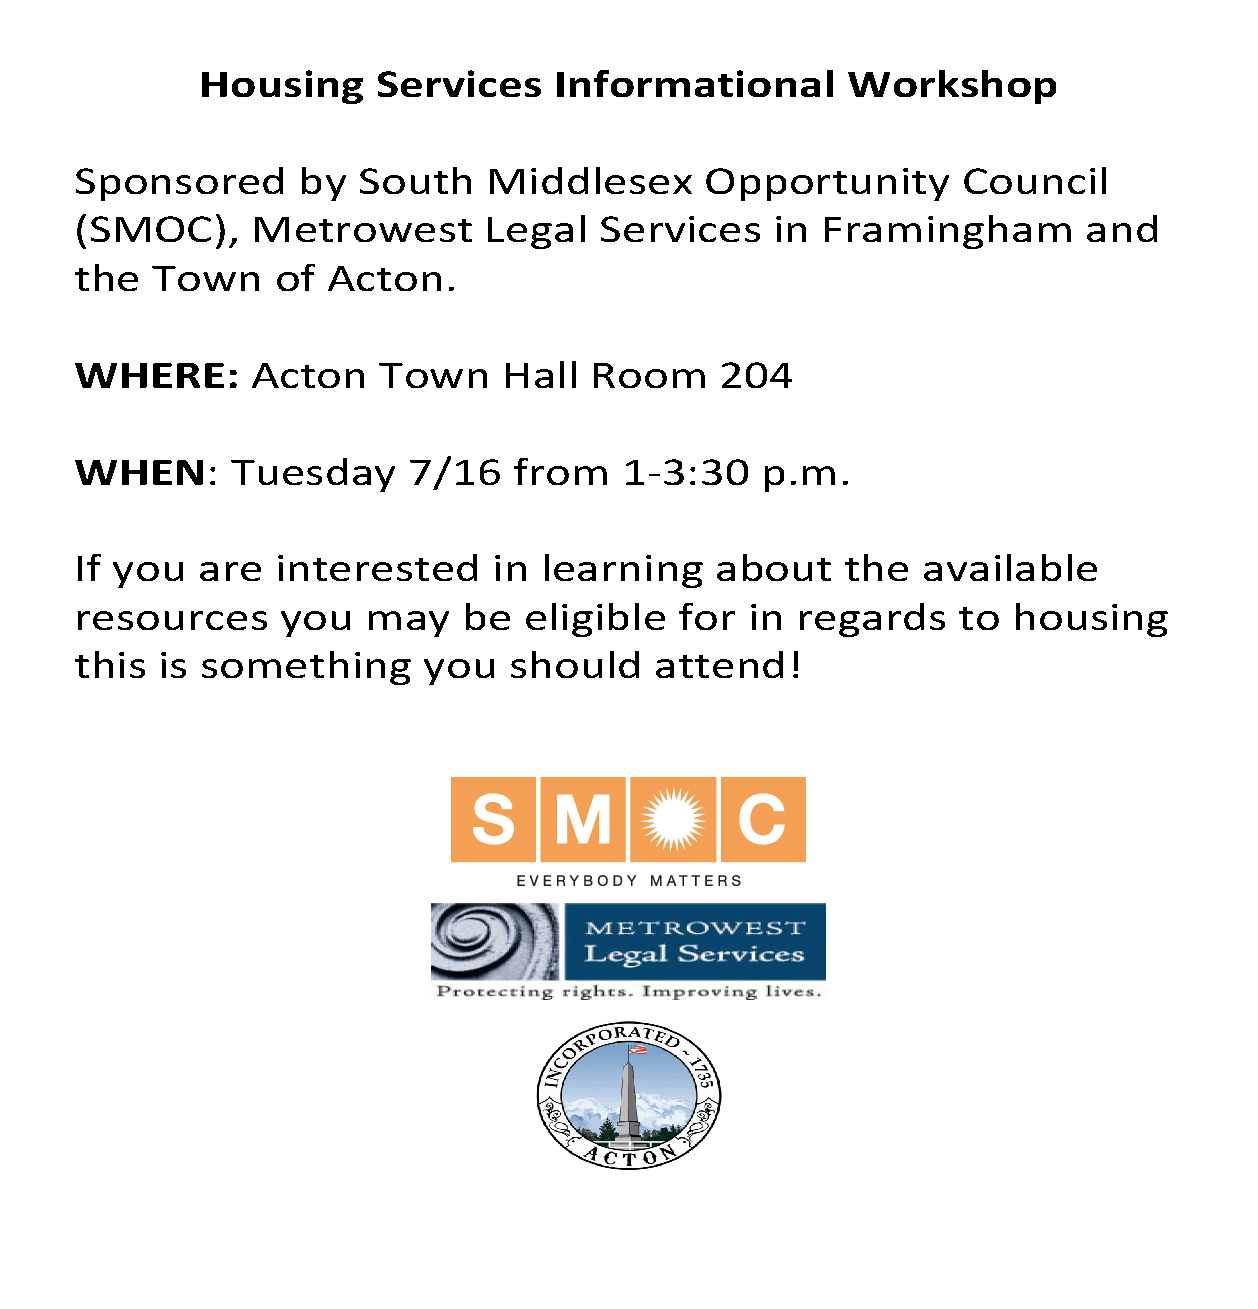 FREE HOUSING WORKSHOP FOR RESIDENTS